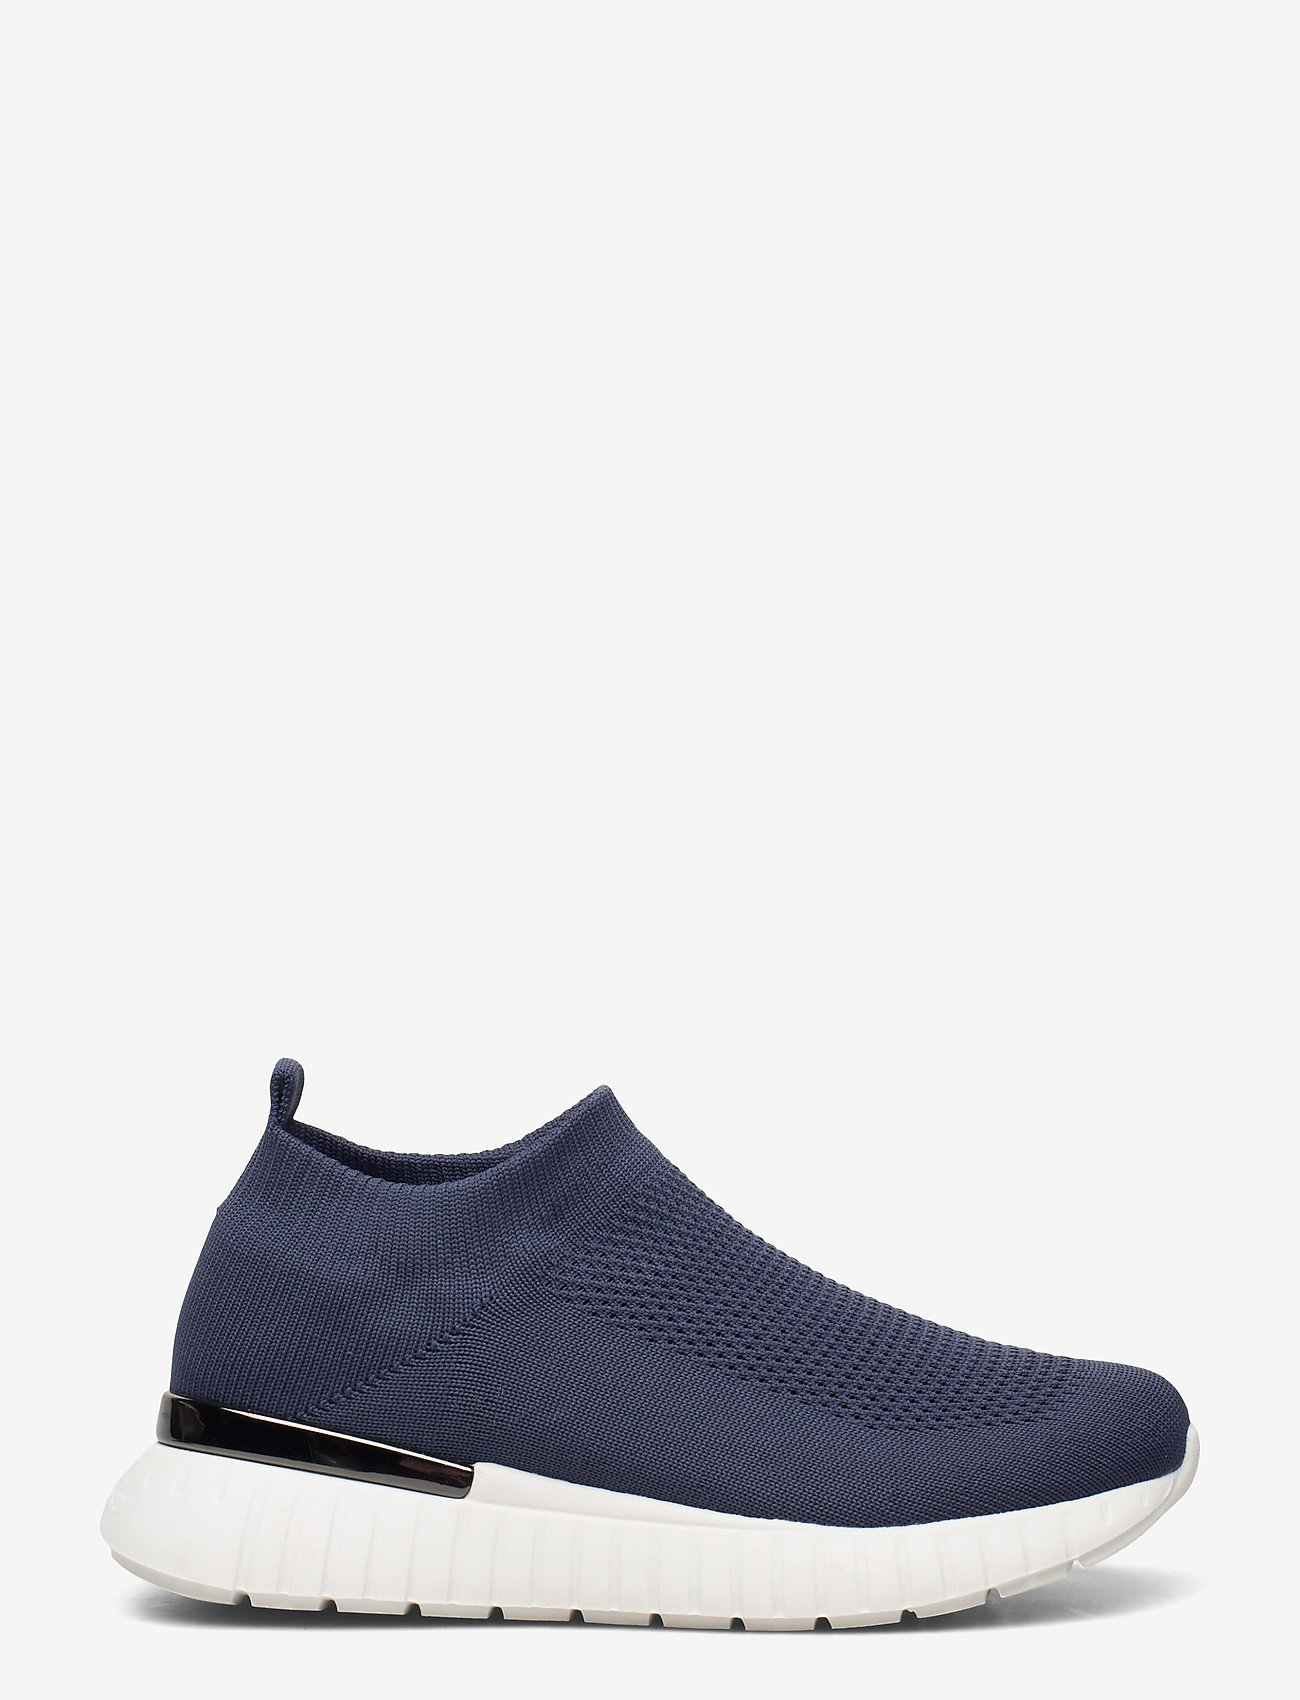 Ilse Jacobsen - Sneakers - slip-on sneakers - orion blue - 1